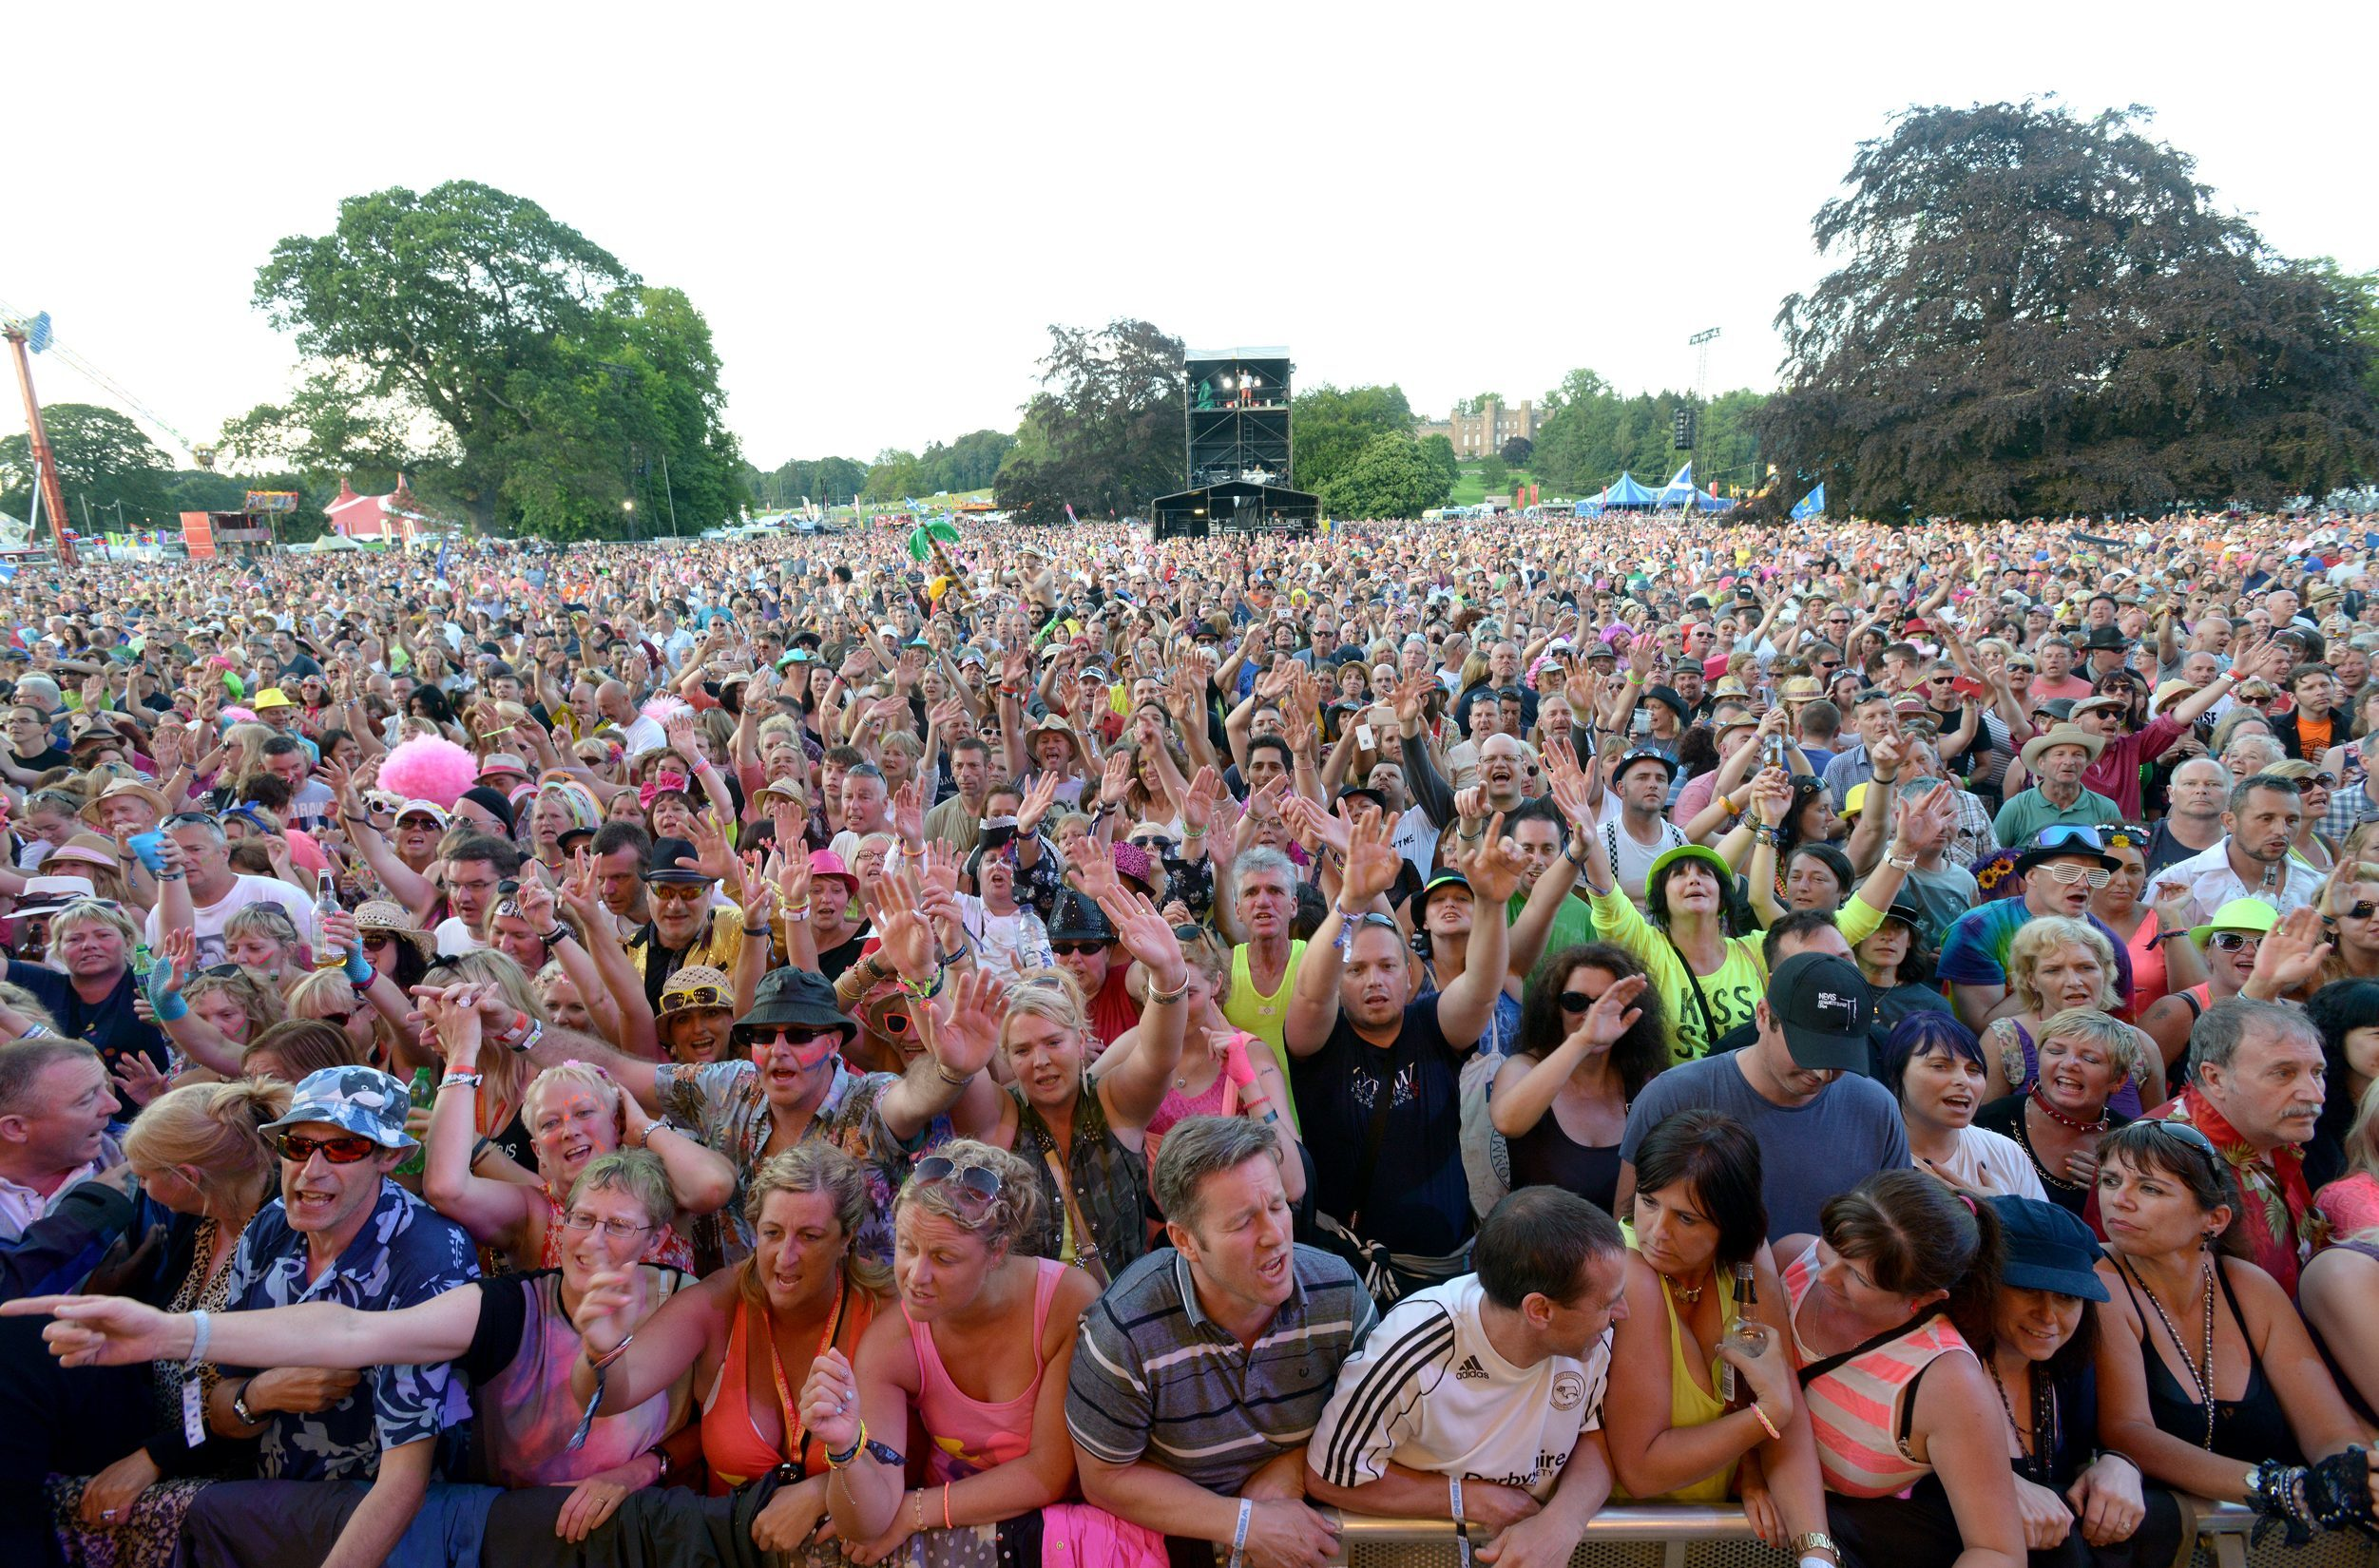 The Rewind festival draws huge crowds to Perthshire.